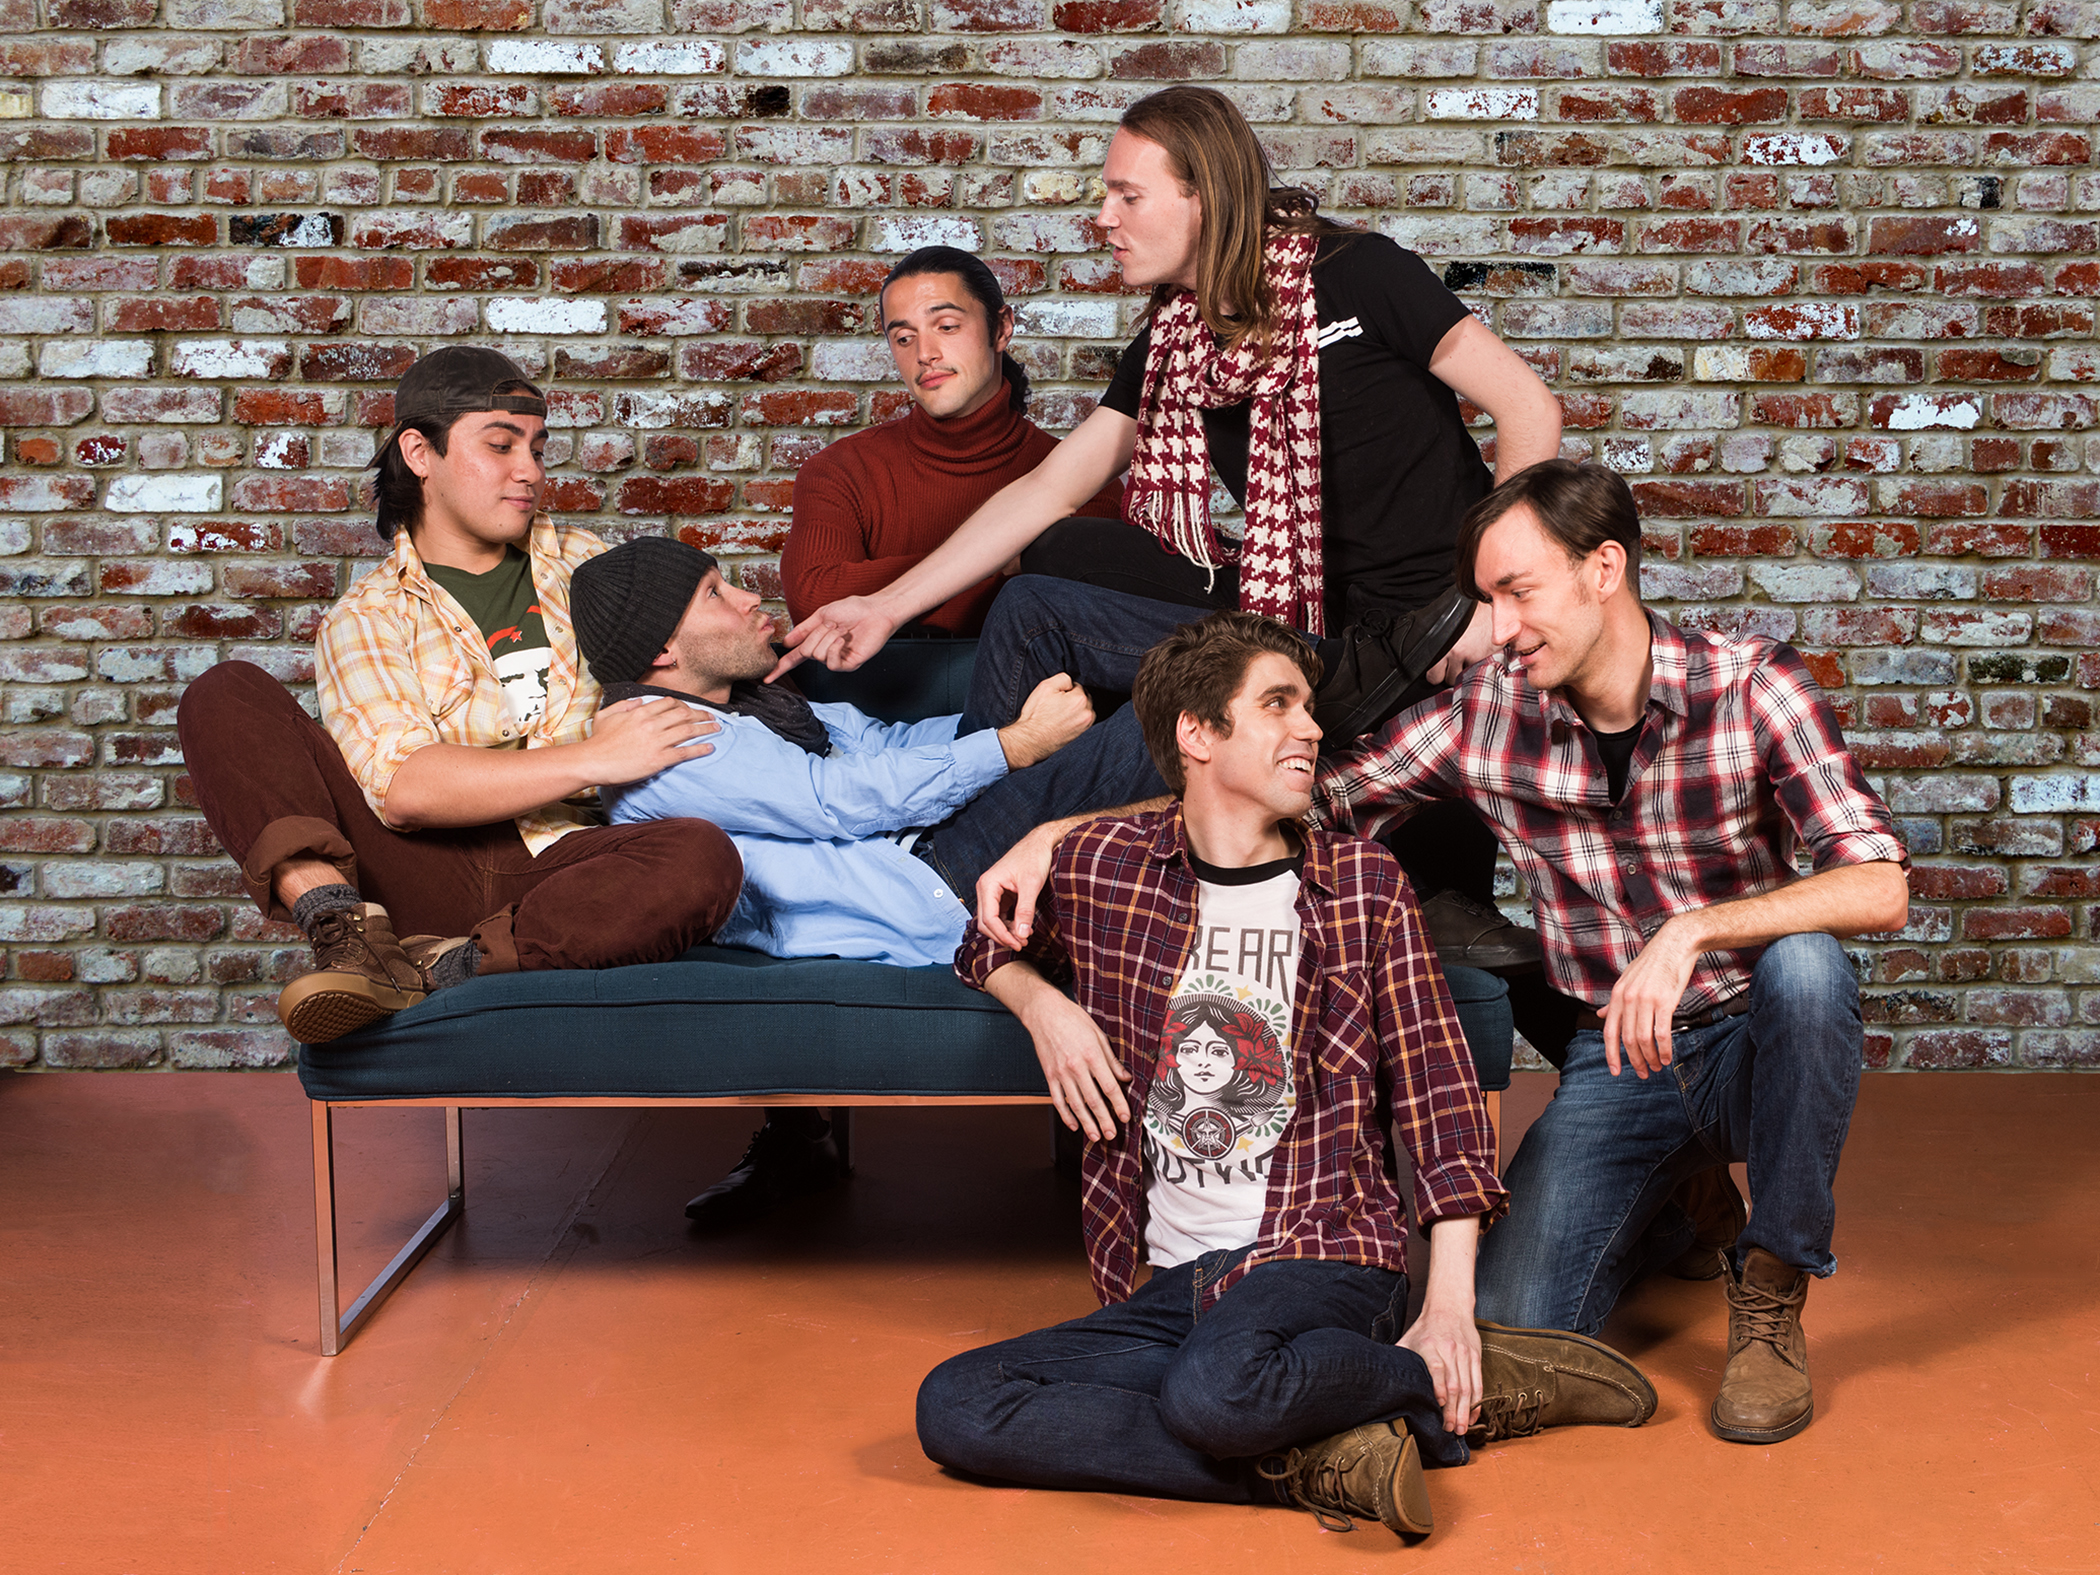 Pictured L to R: Smitty (Sal Mattos), Dev (Devon Marra), Marcos (Vaho), J (Chris Steele), Cory (Max Seijas) and Marty (Robert Kittler) are having a kiki that's going to change everything. Photo by Lois Tema.